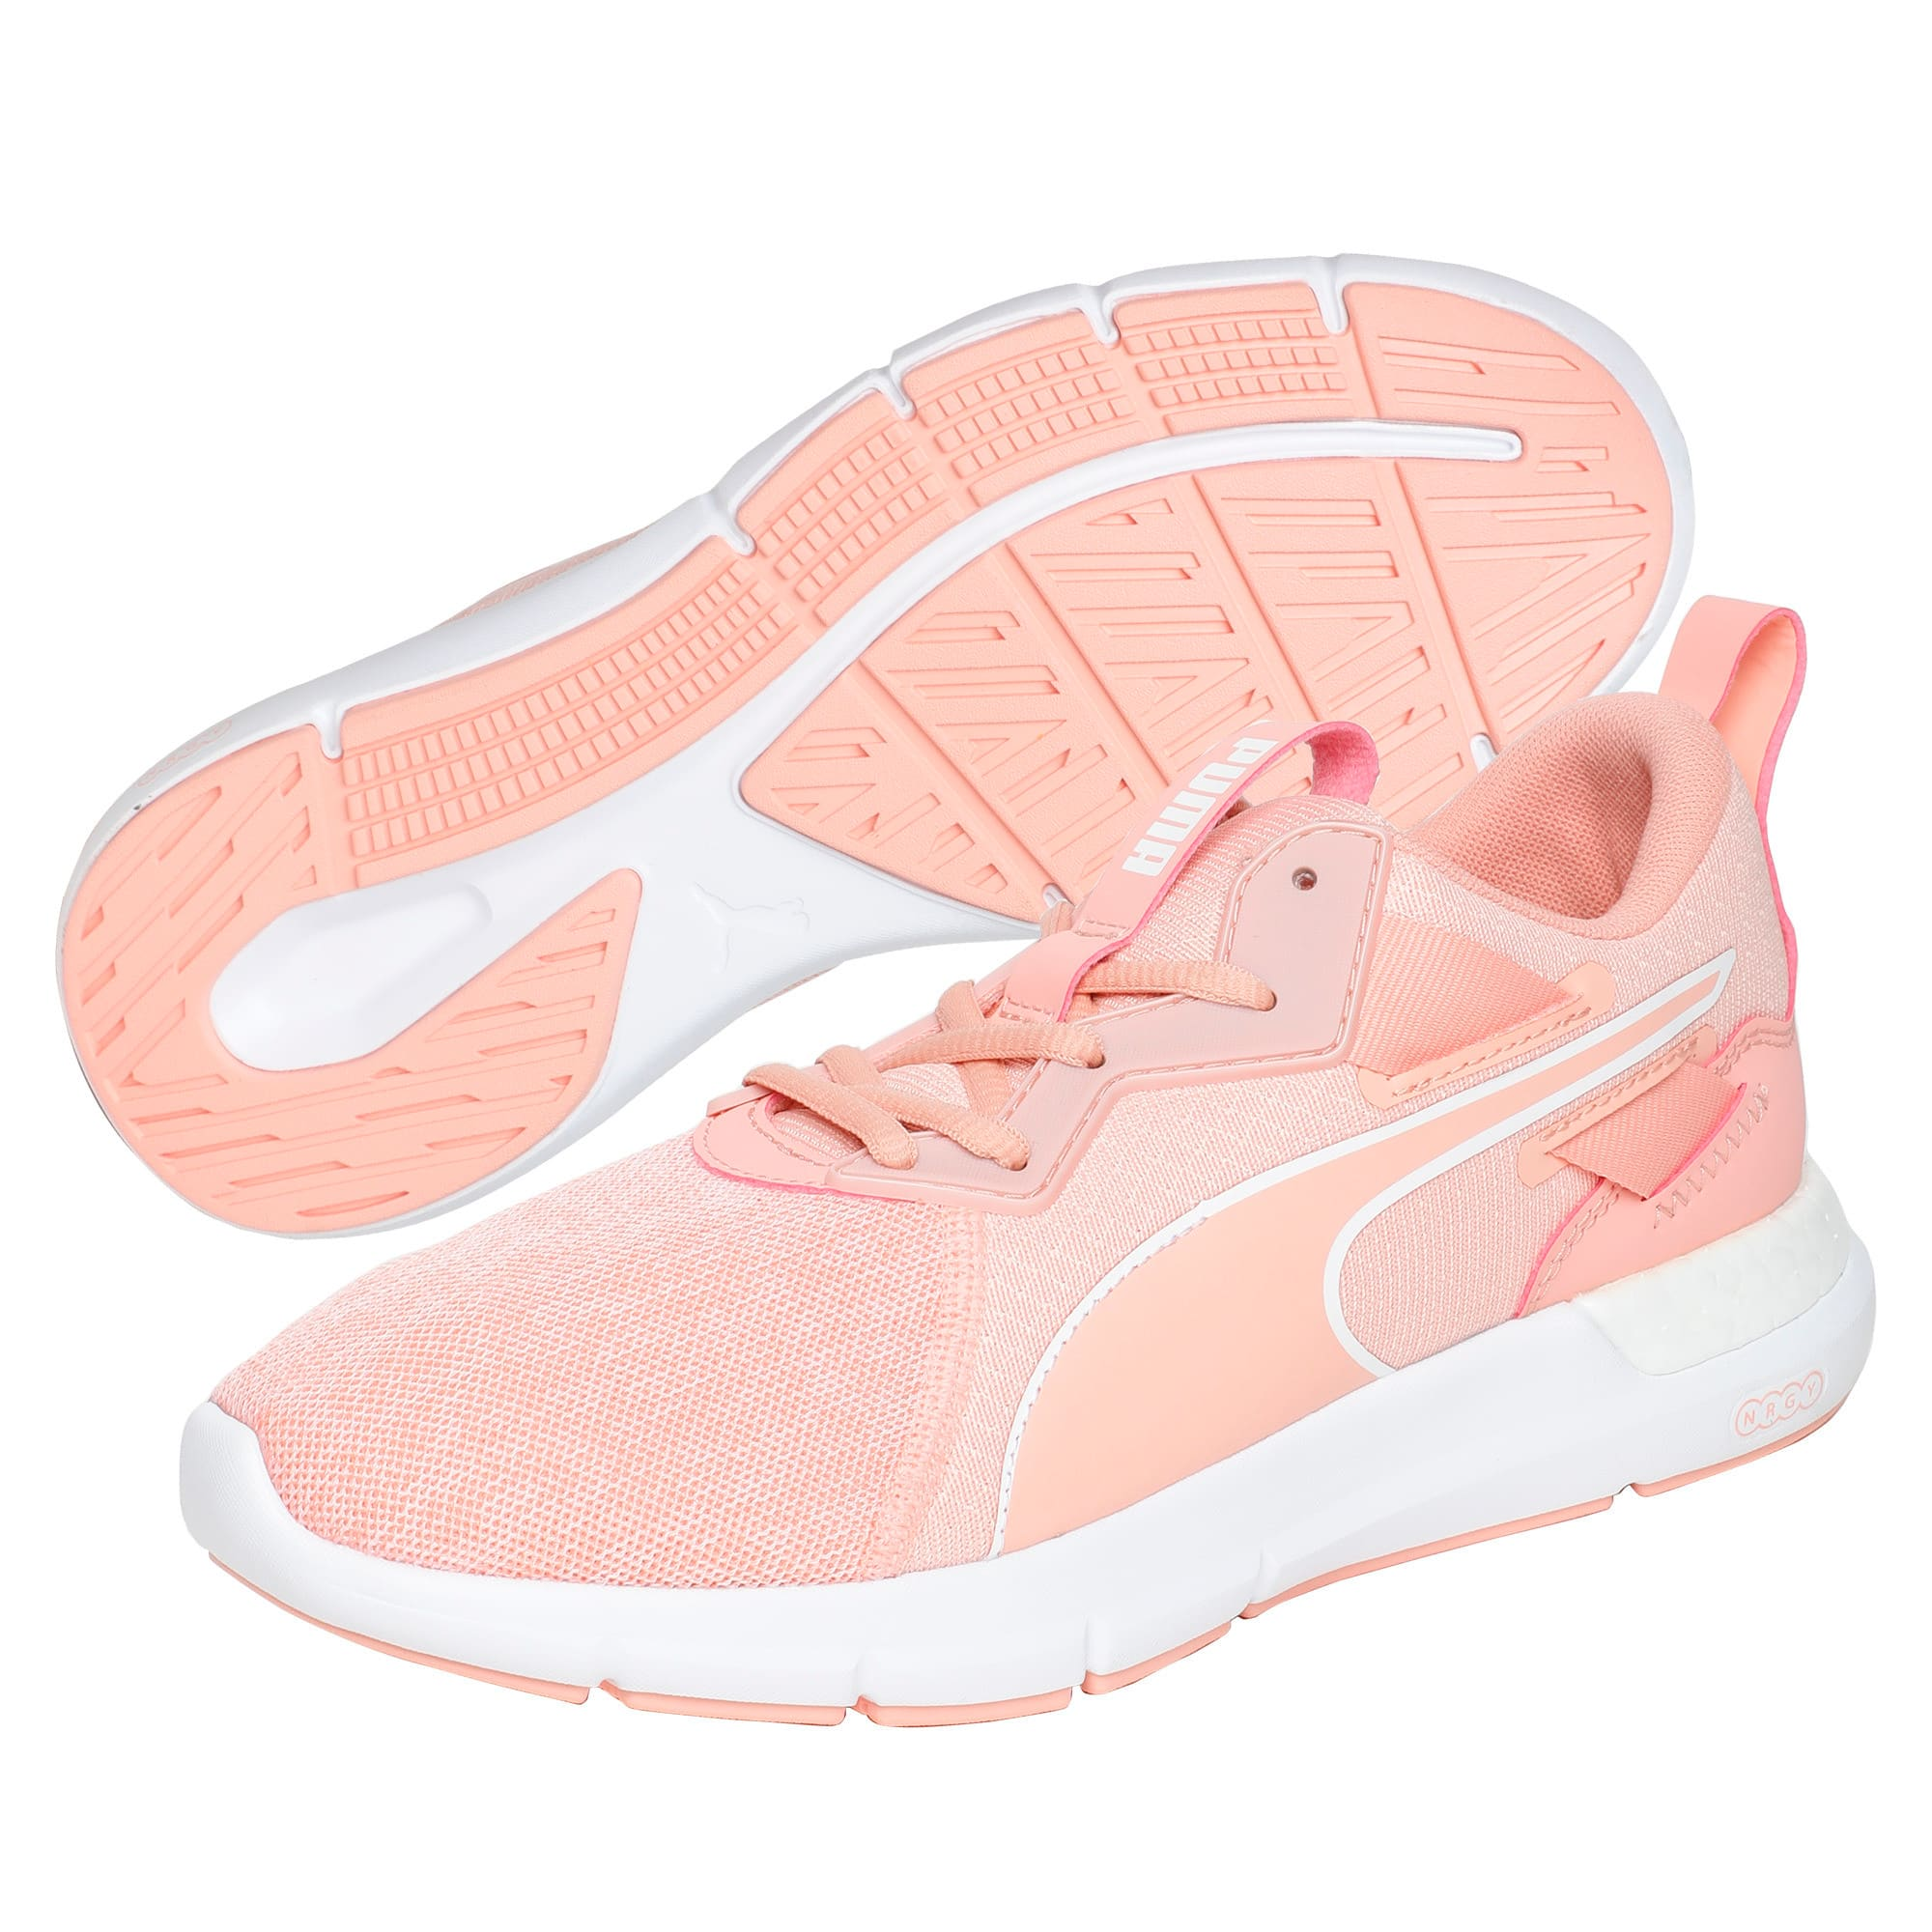 Thumbnail 2 of NRGY Dynamo Futuro Wns Puma Black-Puma W, Peach Bud-Puma White, medium-IND